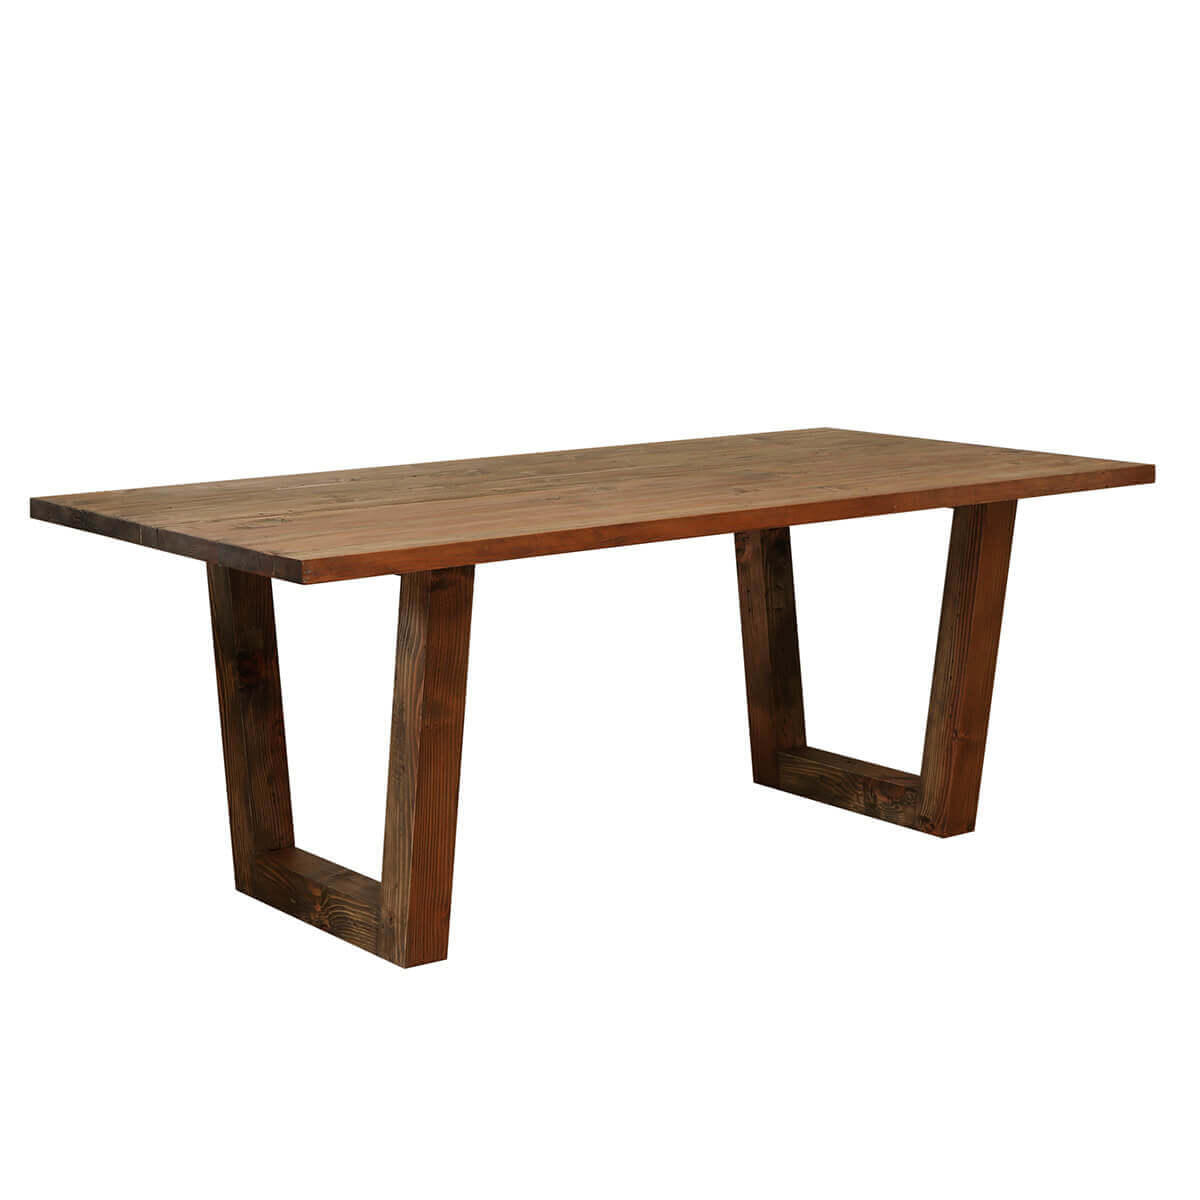 China Teak Dining Table China Teak Dining Table Shopping Guide At